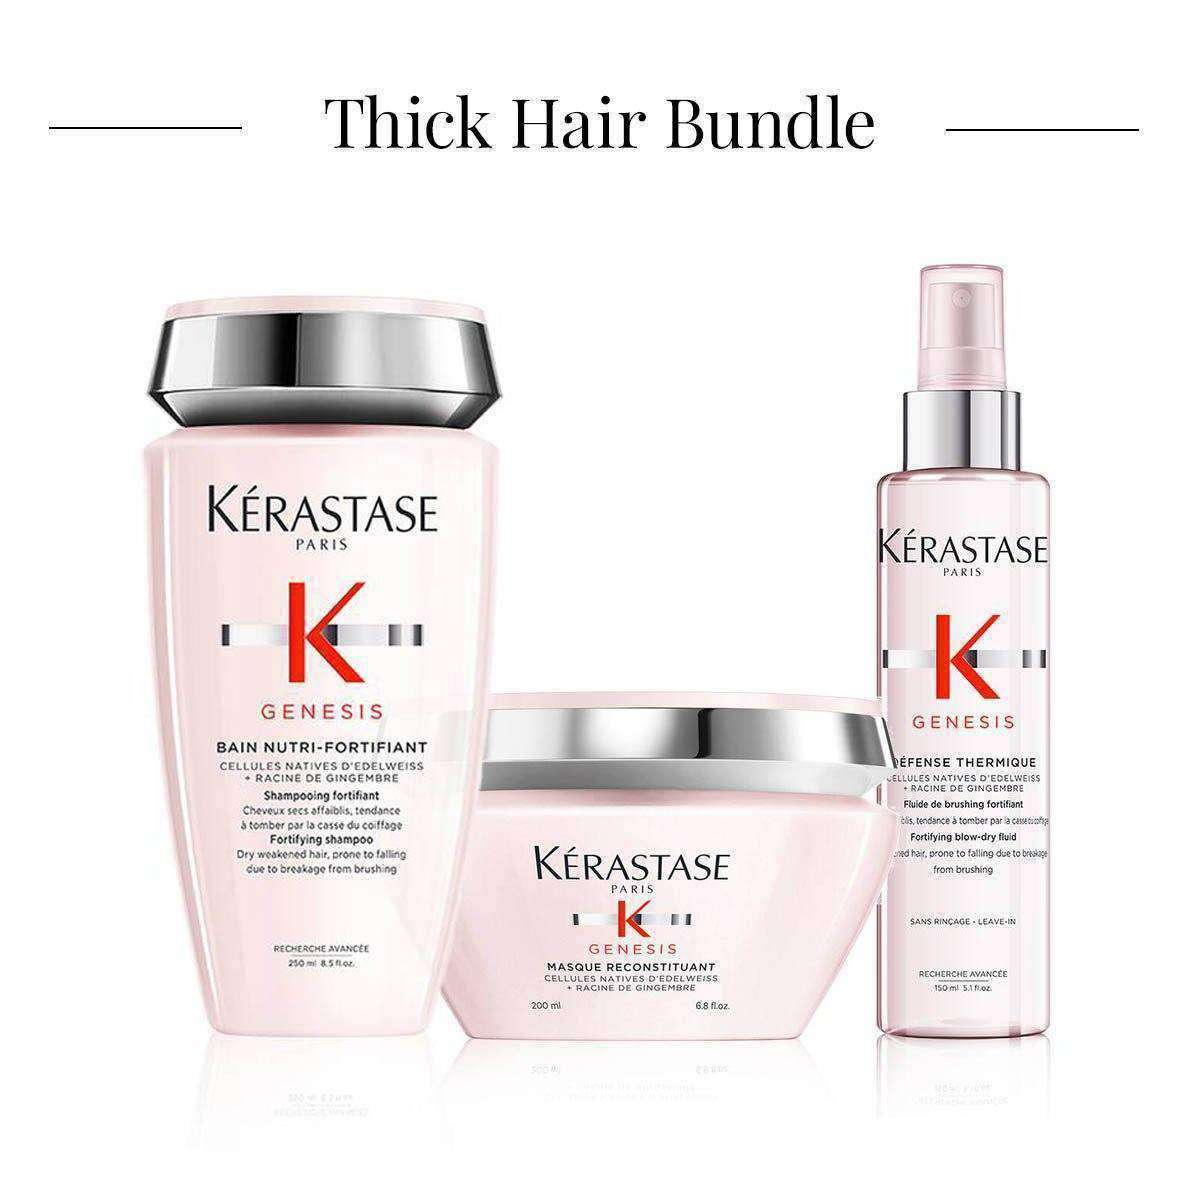 Thick Hair Bundle - Shant Tavitian